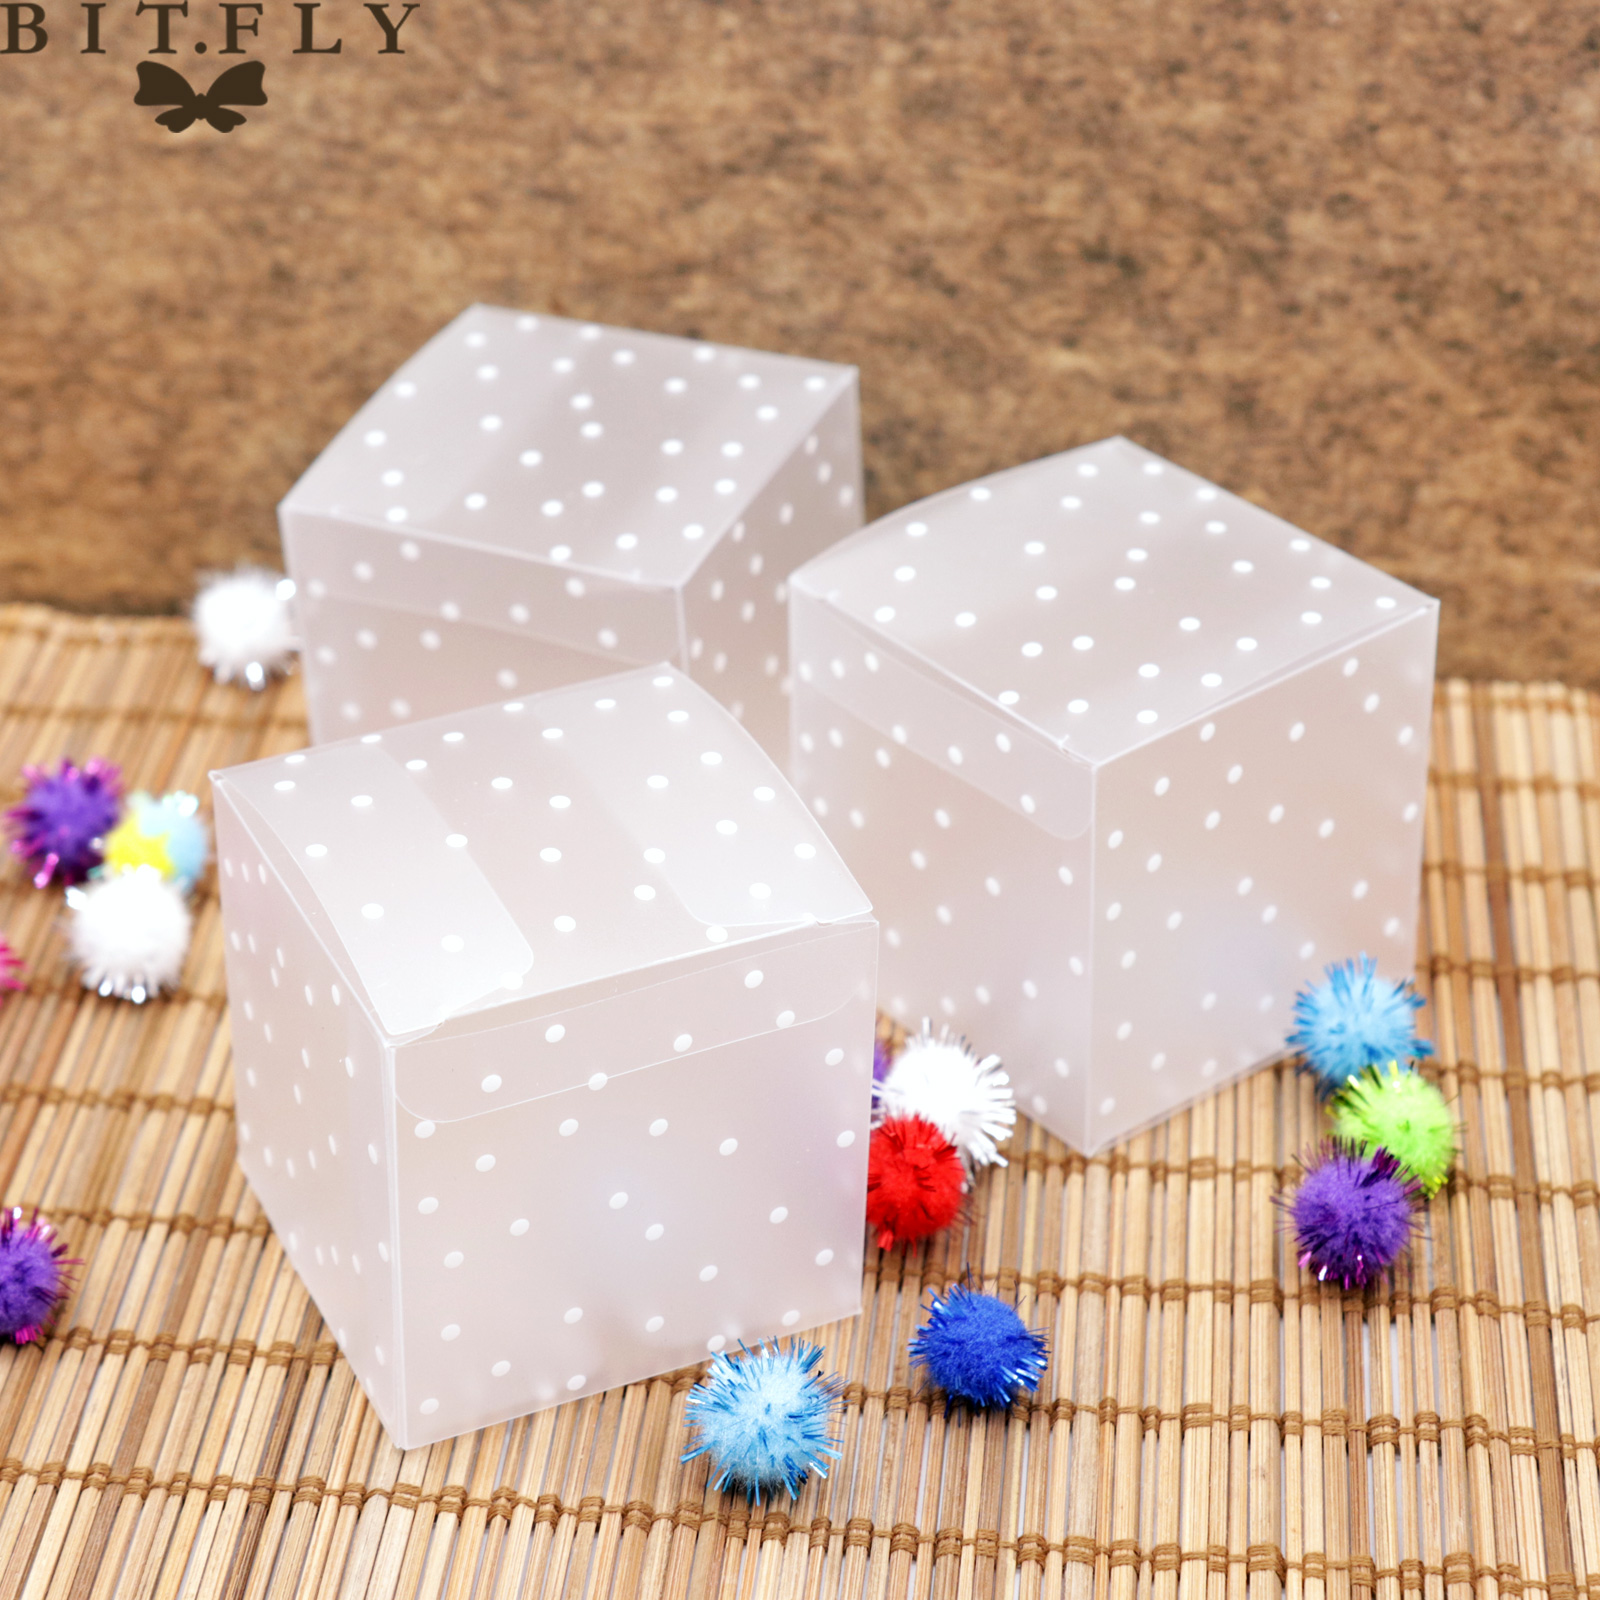 10pcs Transparent Candy Box PVC Square Boxes Chocolate Snacks Sweet Gift Box Cube Wedding Favor Mariage Birthday Party Supply